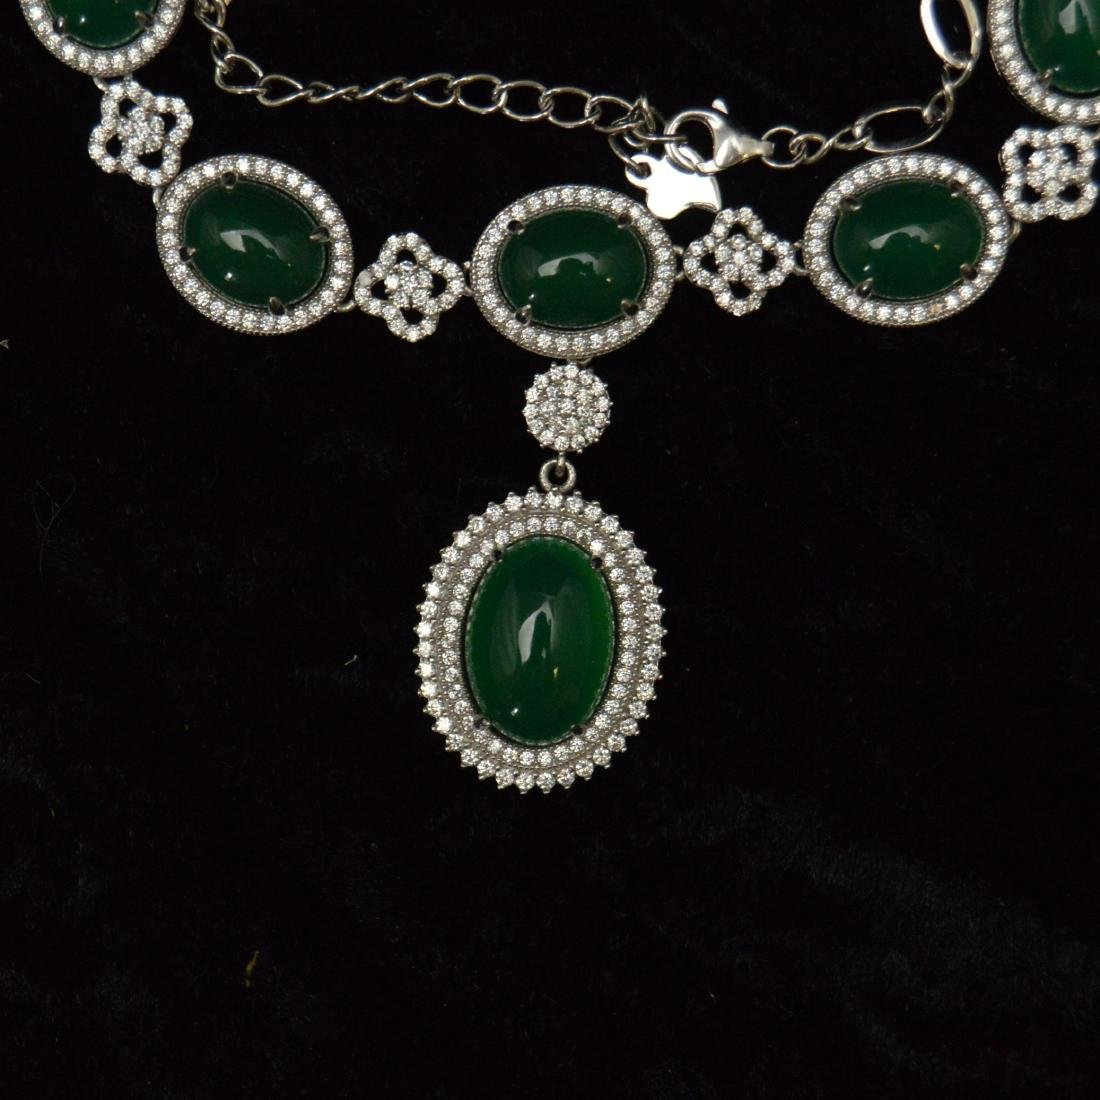 Green Agate Necklace - 2